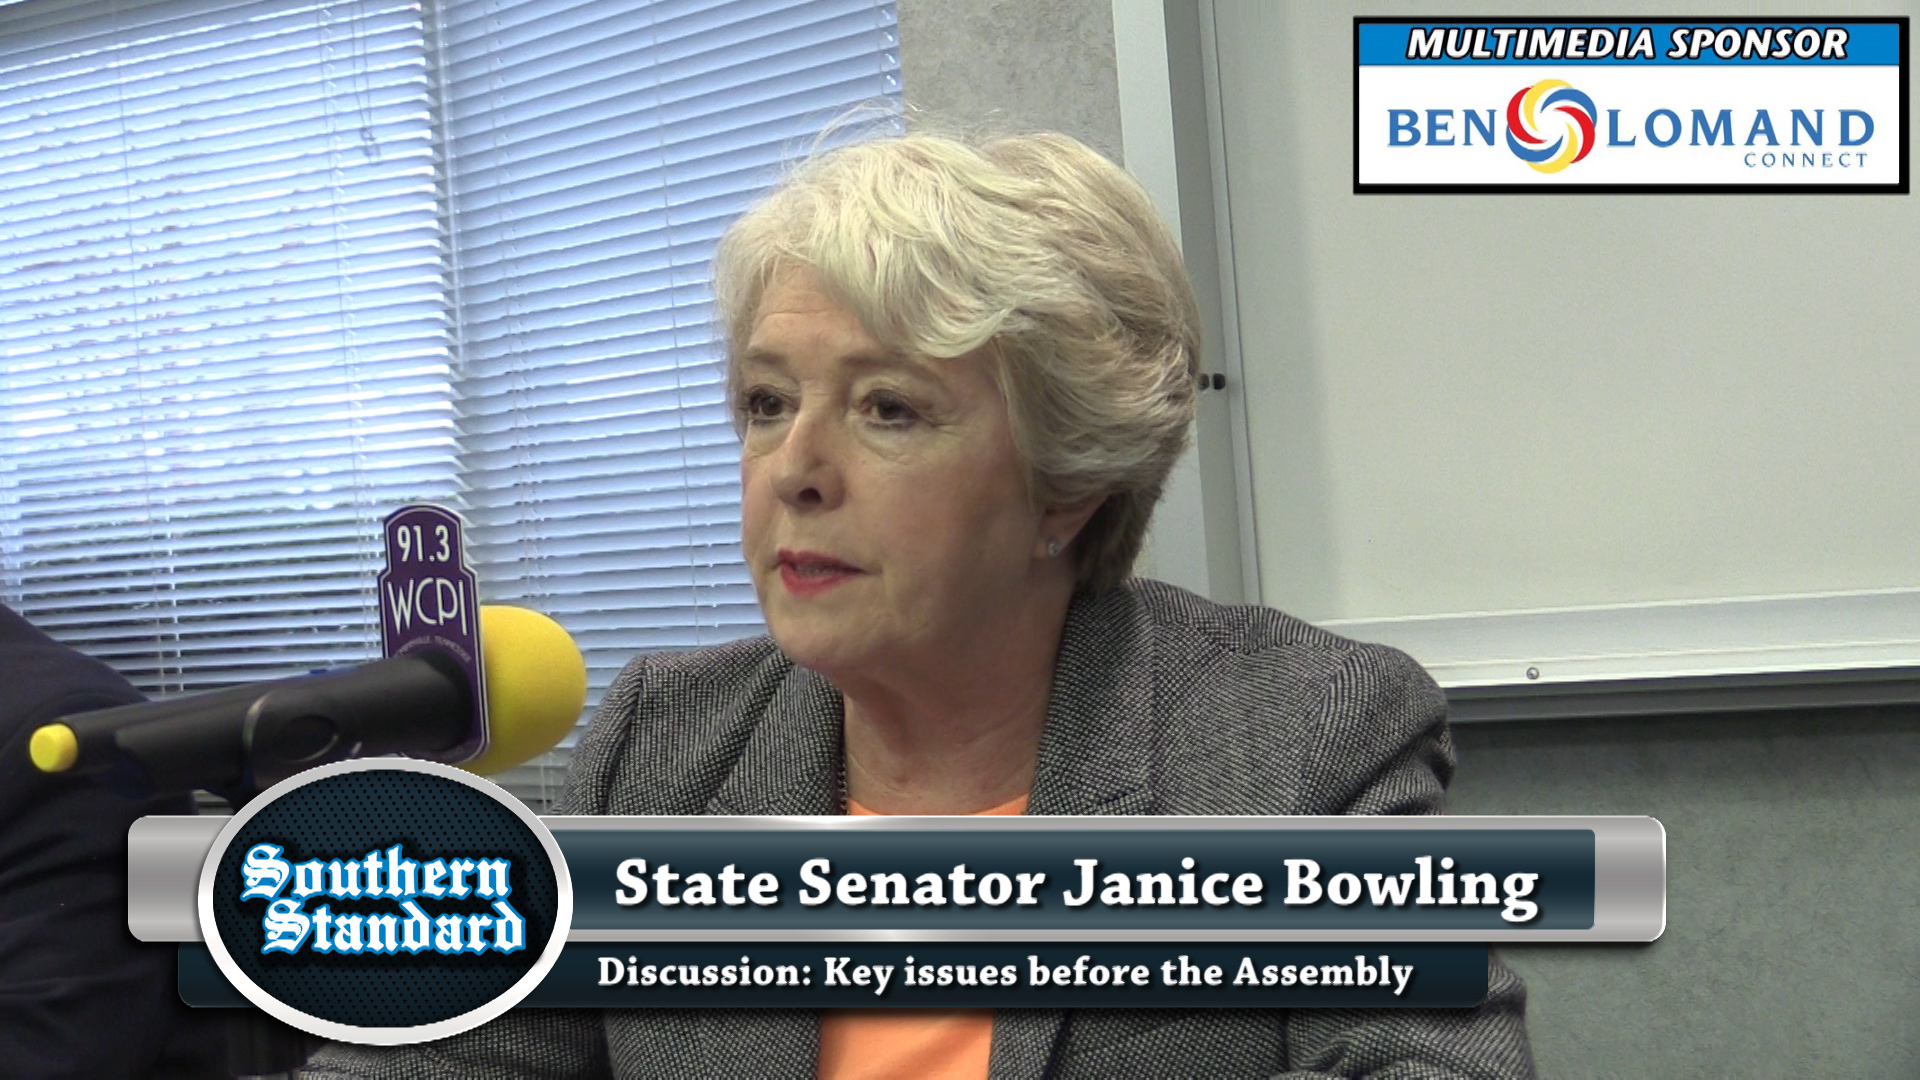 VIDEO - Legislative Breakfast